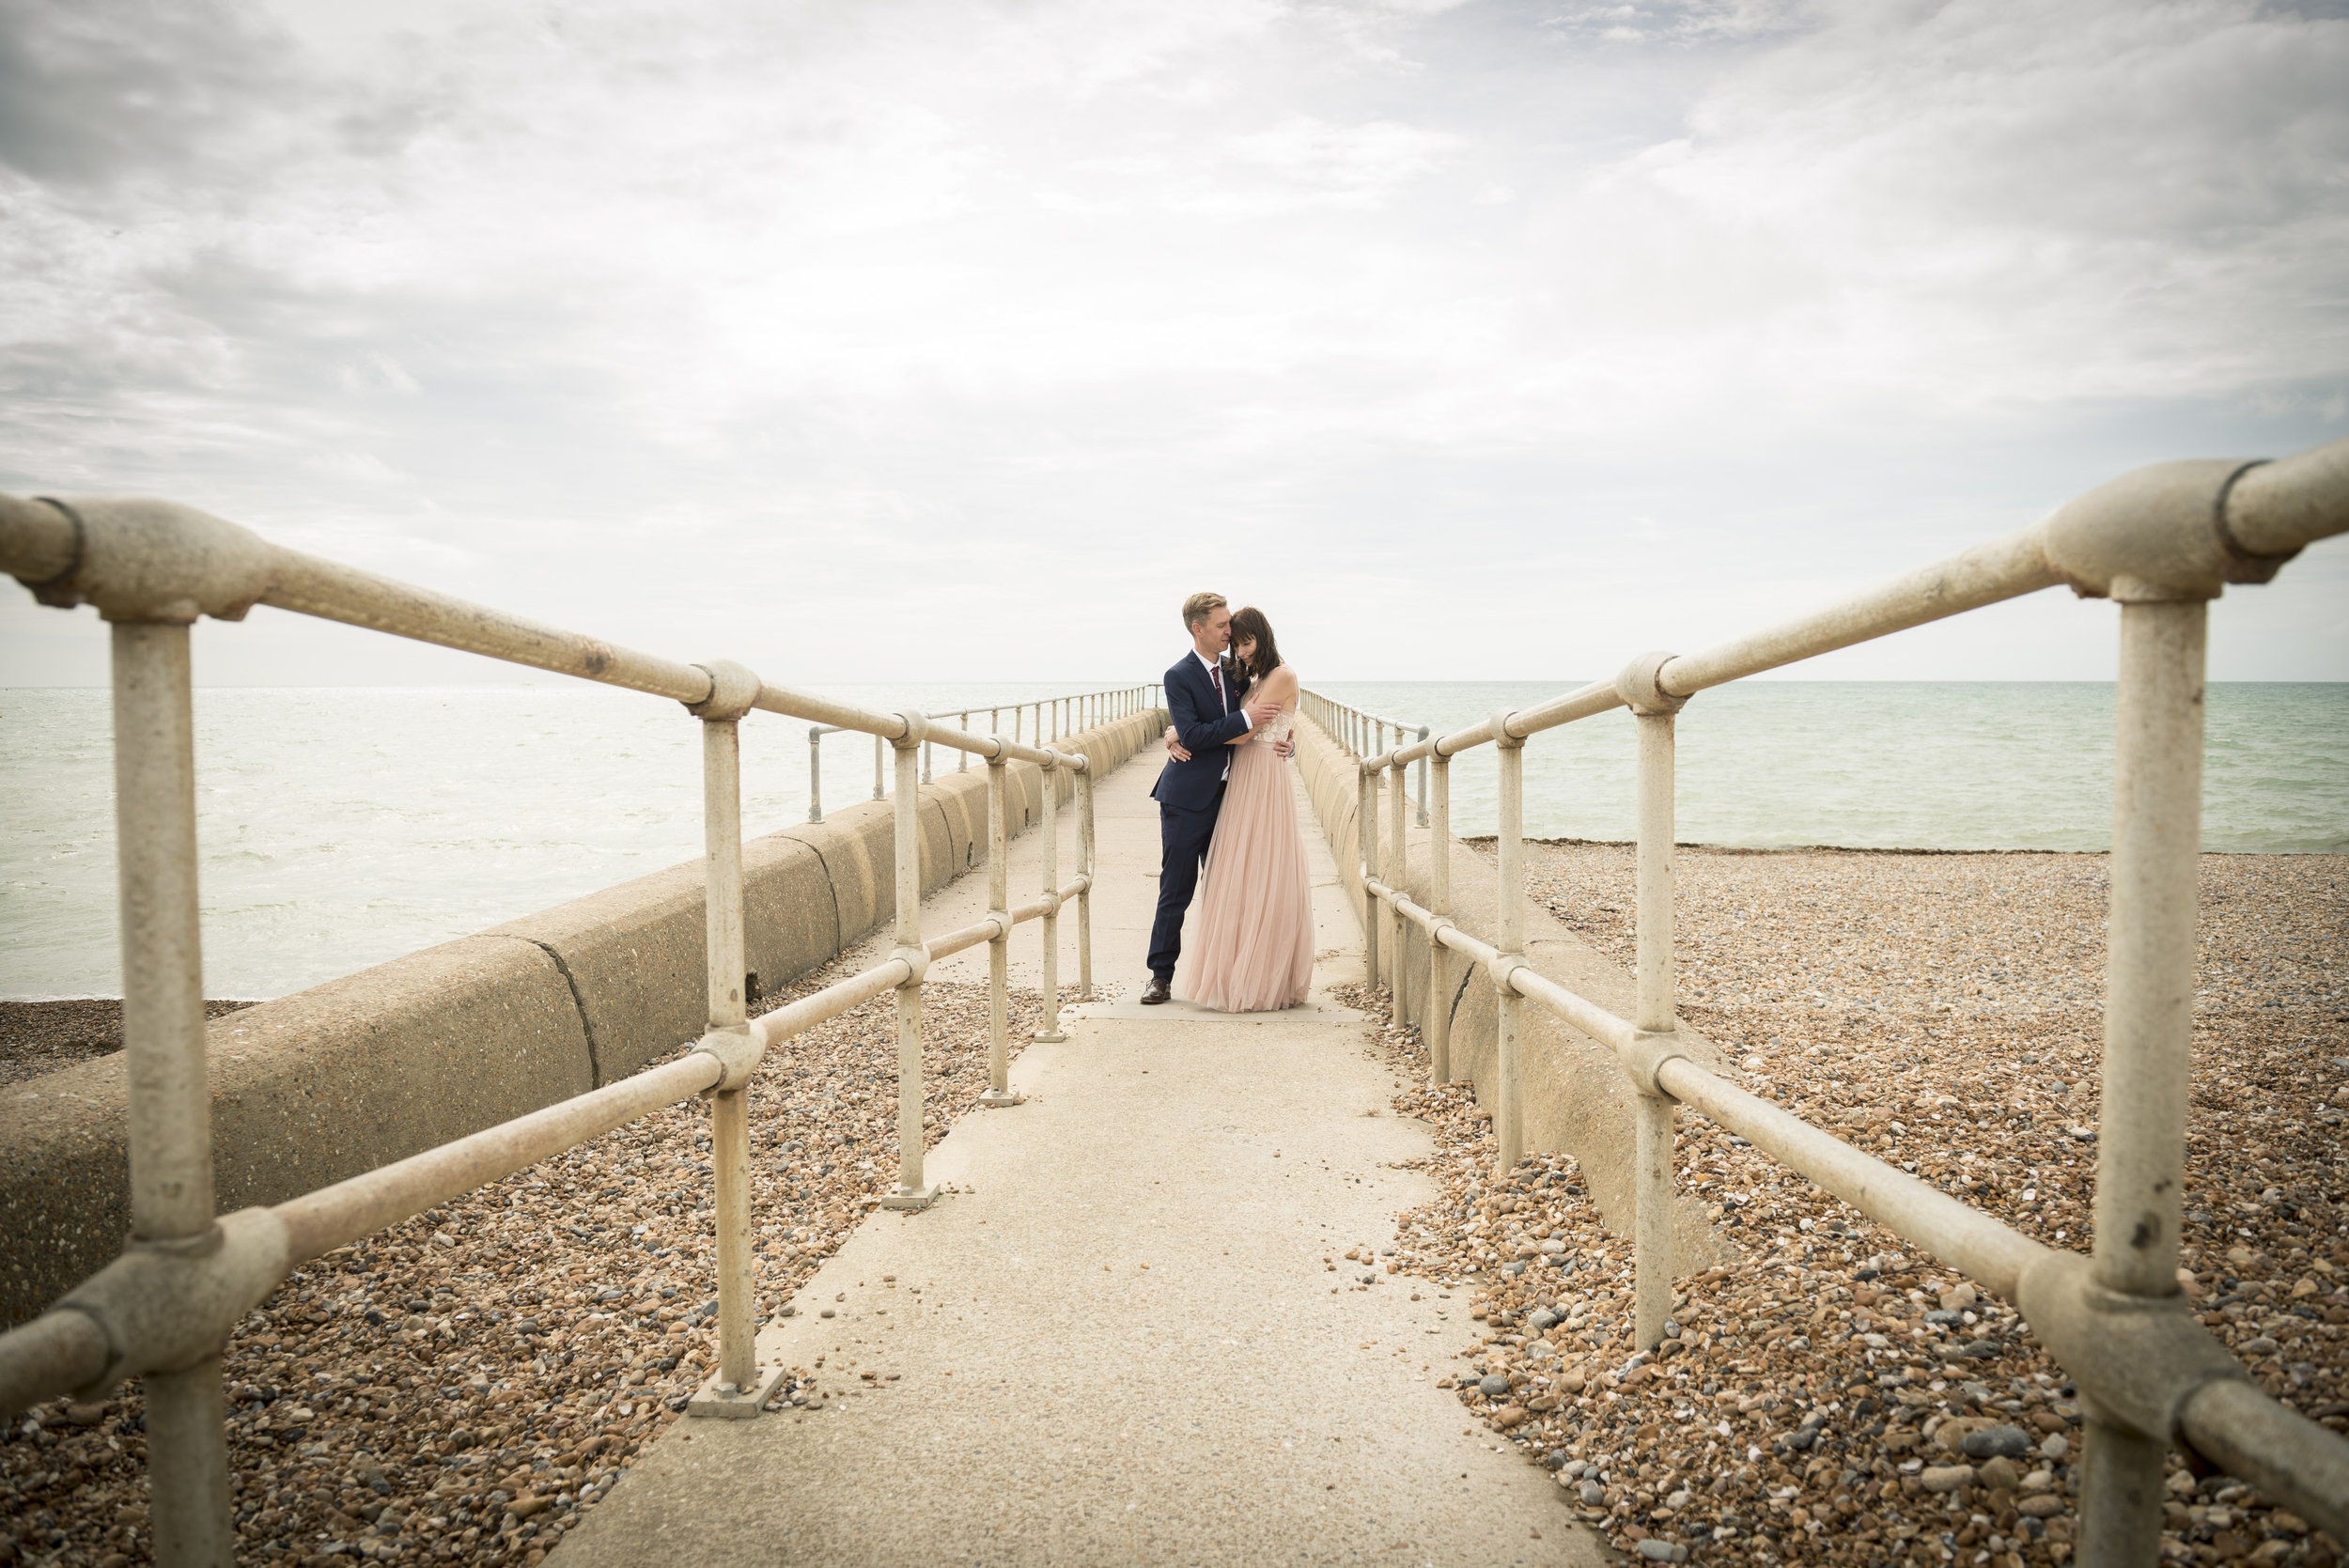 brighton-bandstand-wedding-5.jpg